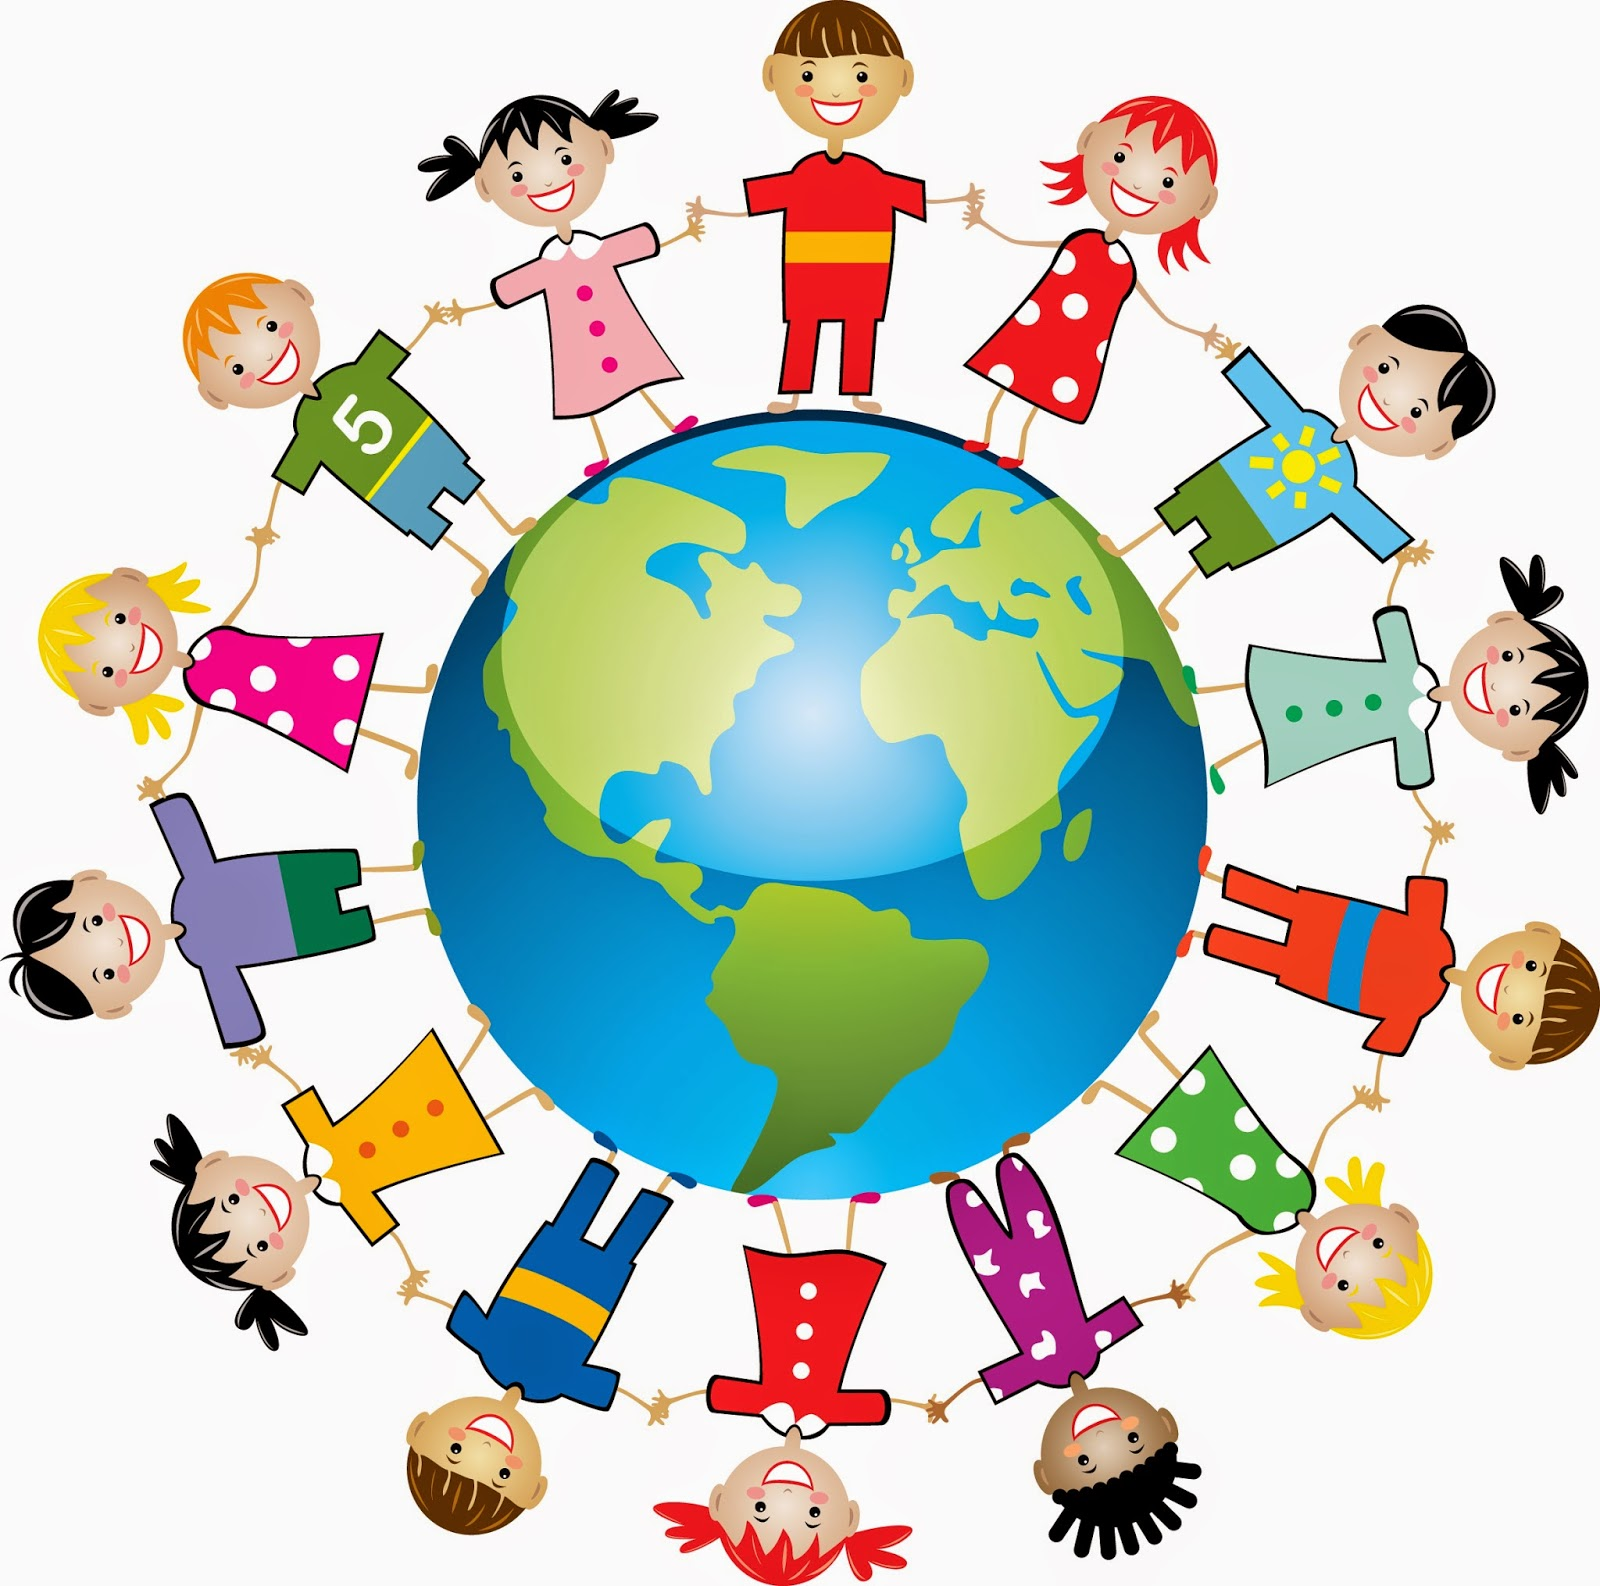 Free Animated Images Of Children, Download Free Clip Art.